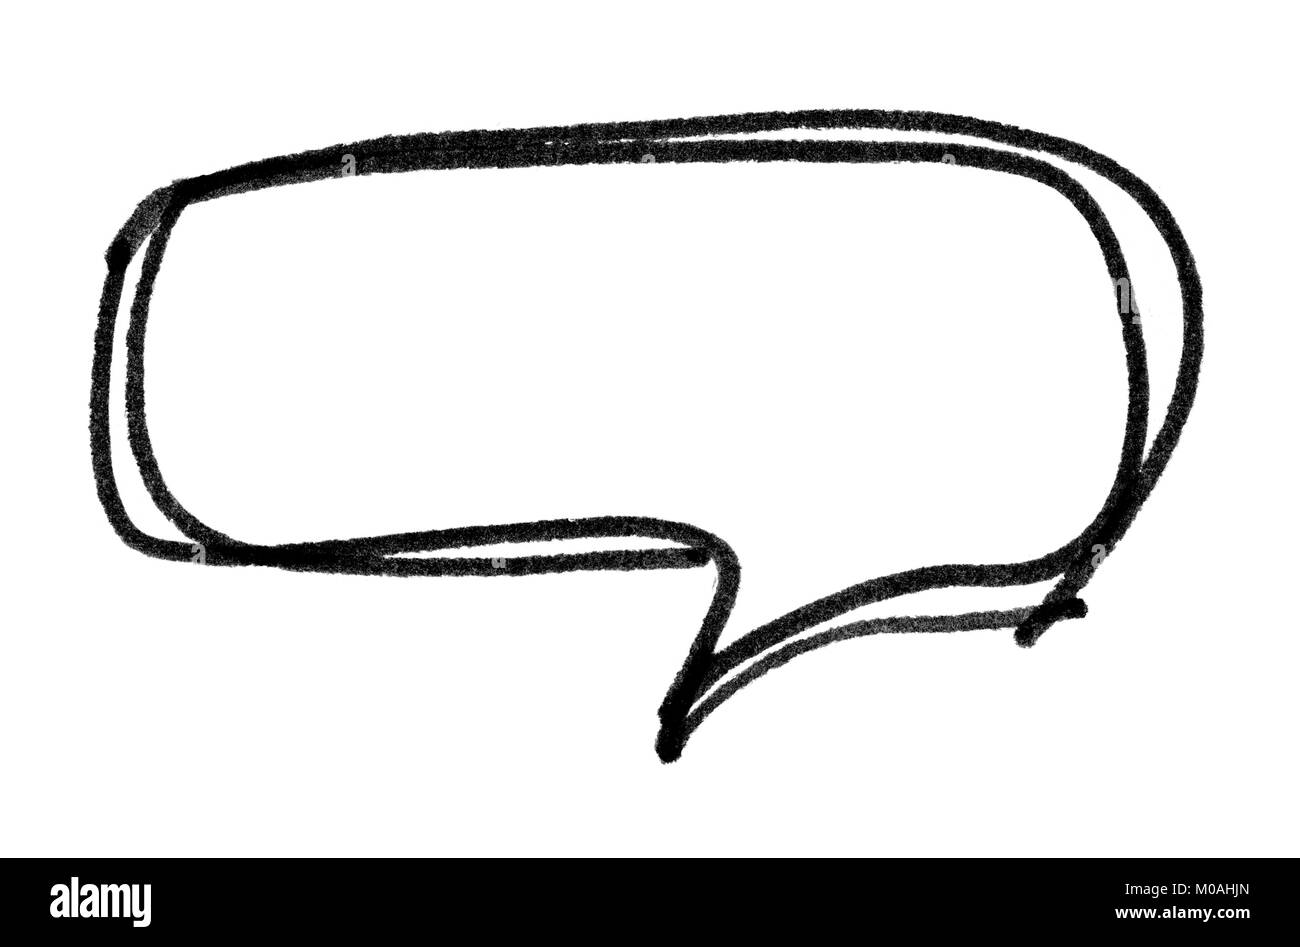 Speech bubble with brush stroke isolated on white background - Stock Image